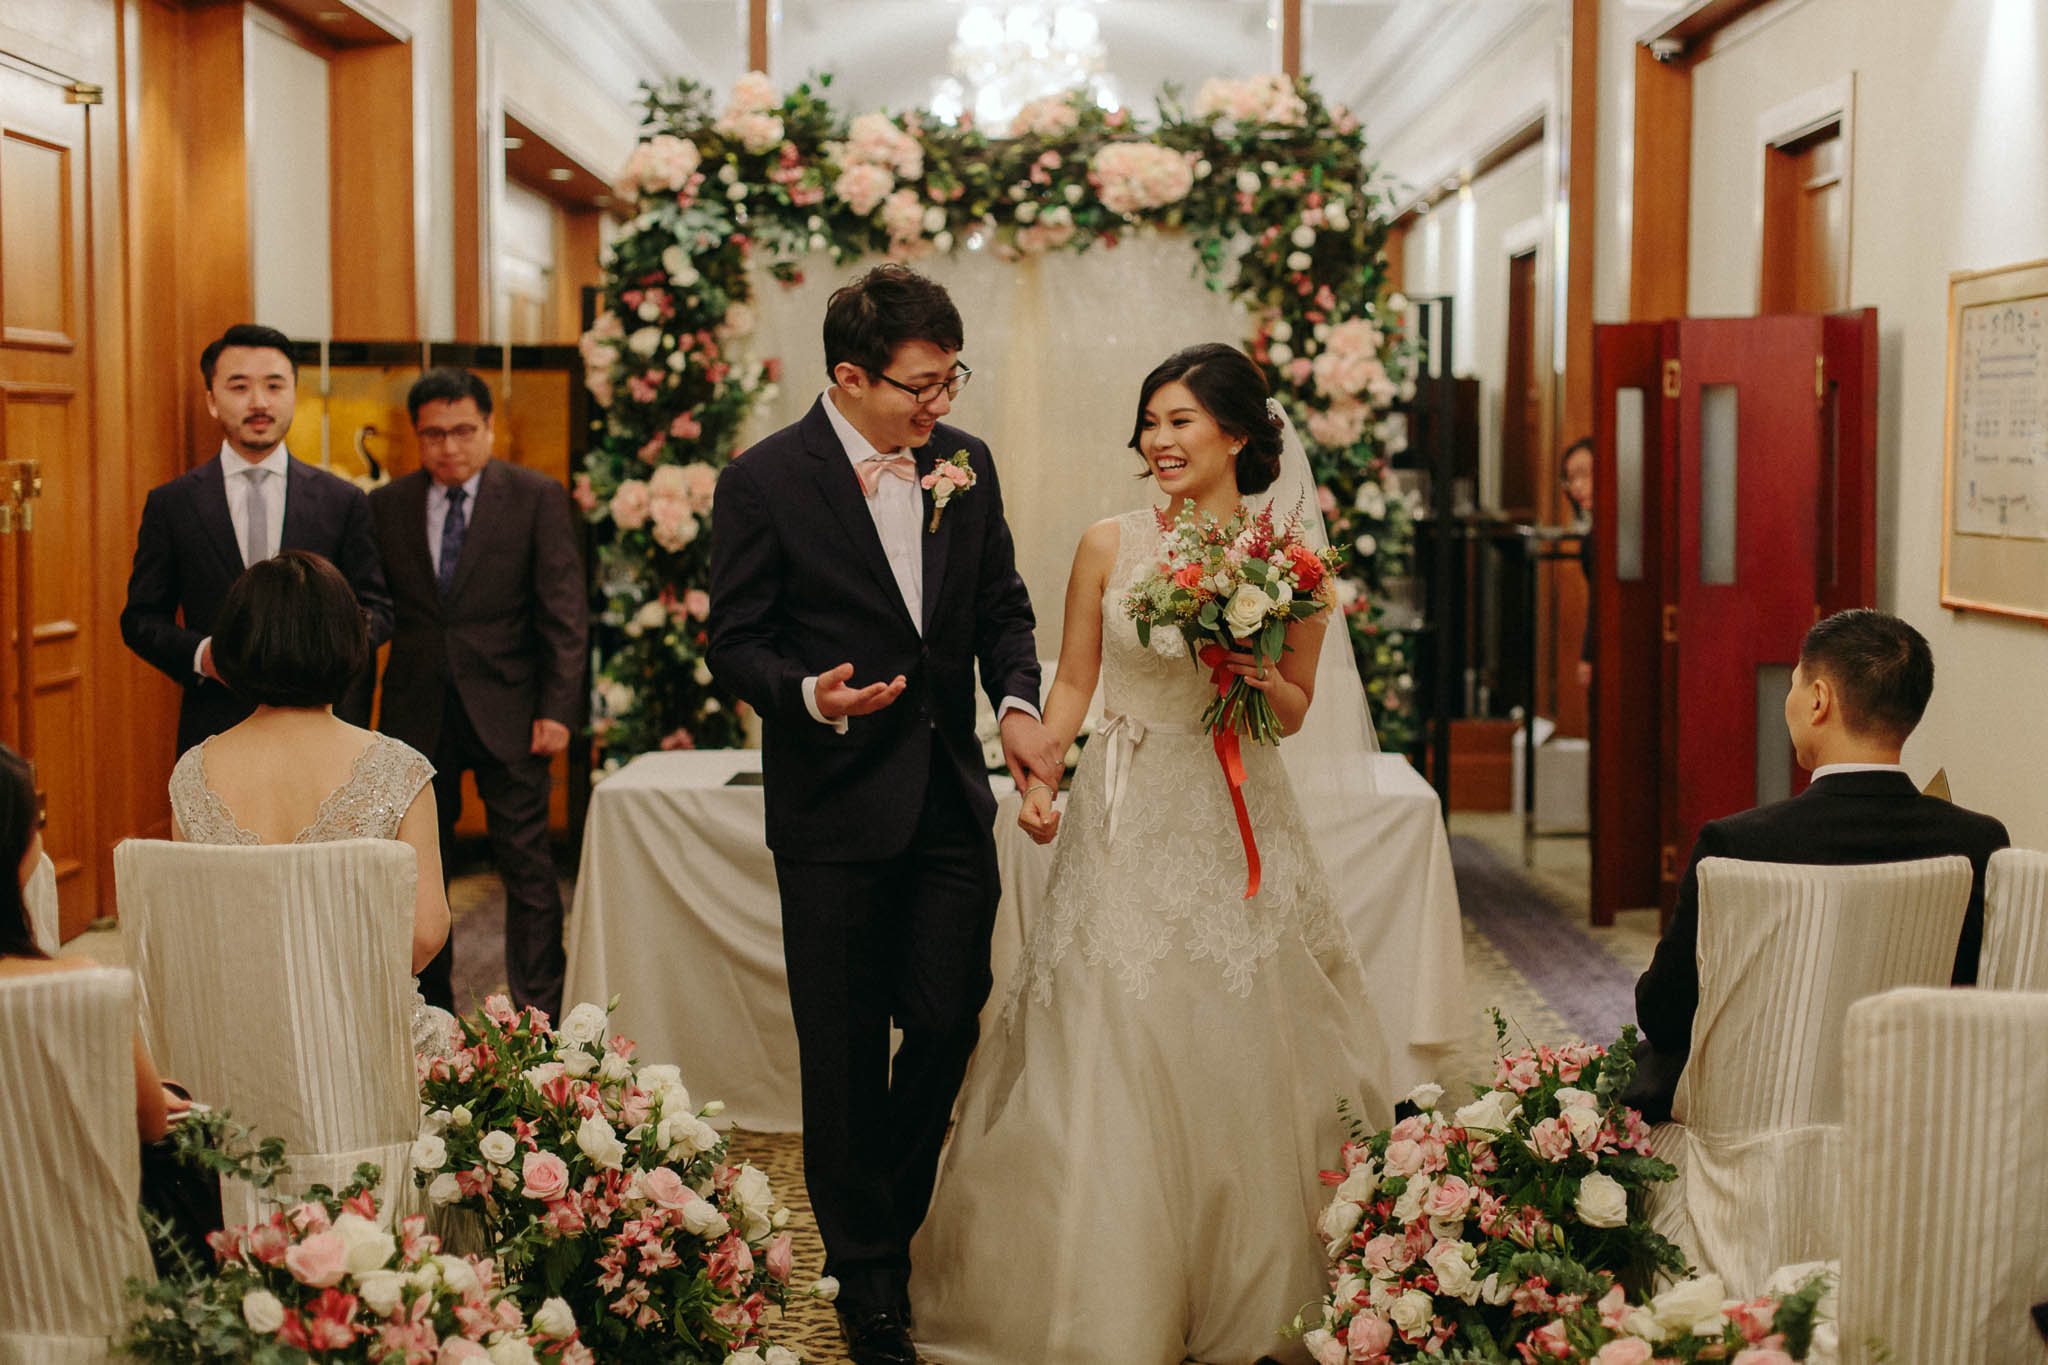 singapore-wedding-photographer-we-made-these-2016-selects-091.jpg